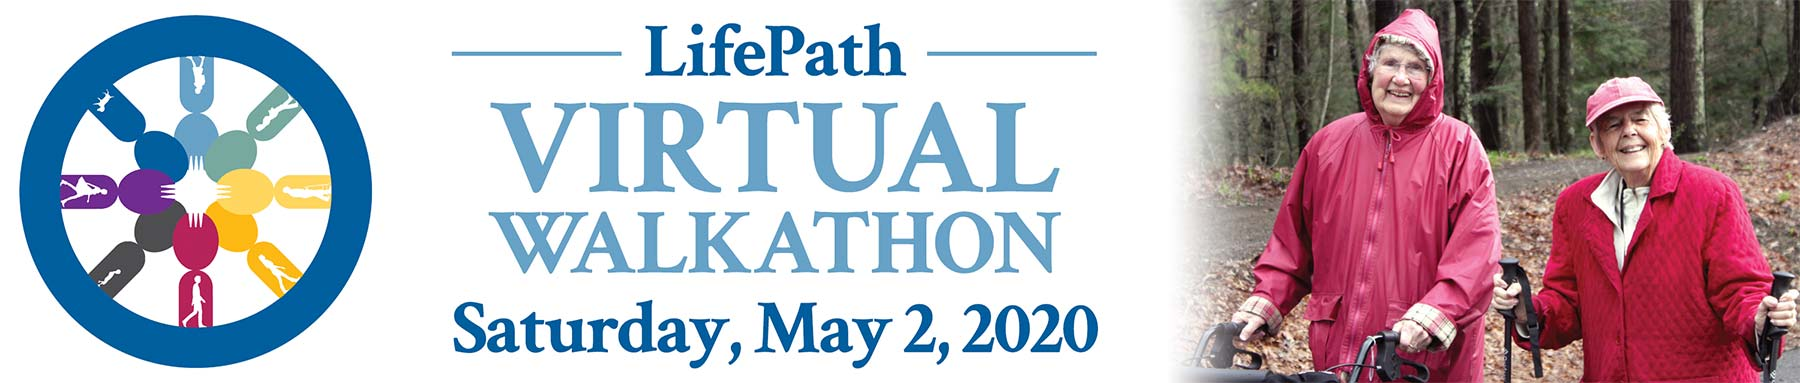 2020 LifePath Walkathon